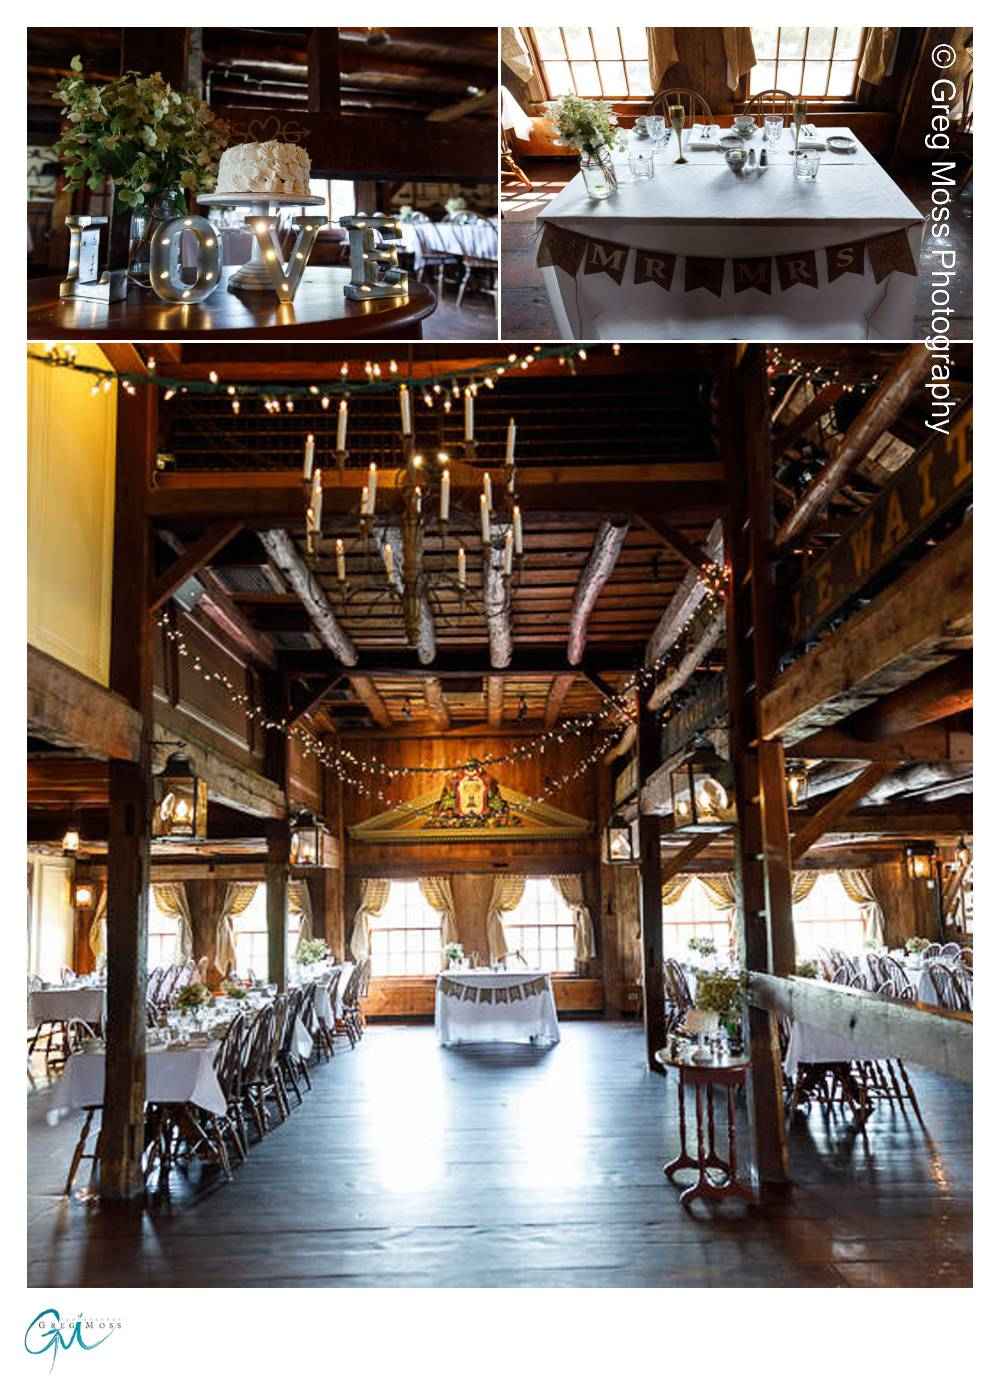 WEdding decorations inside rustic barn